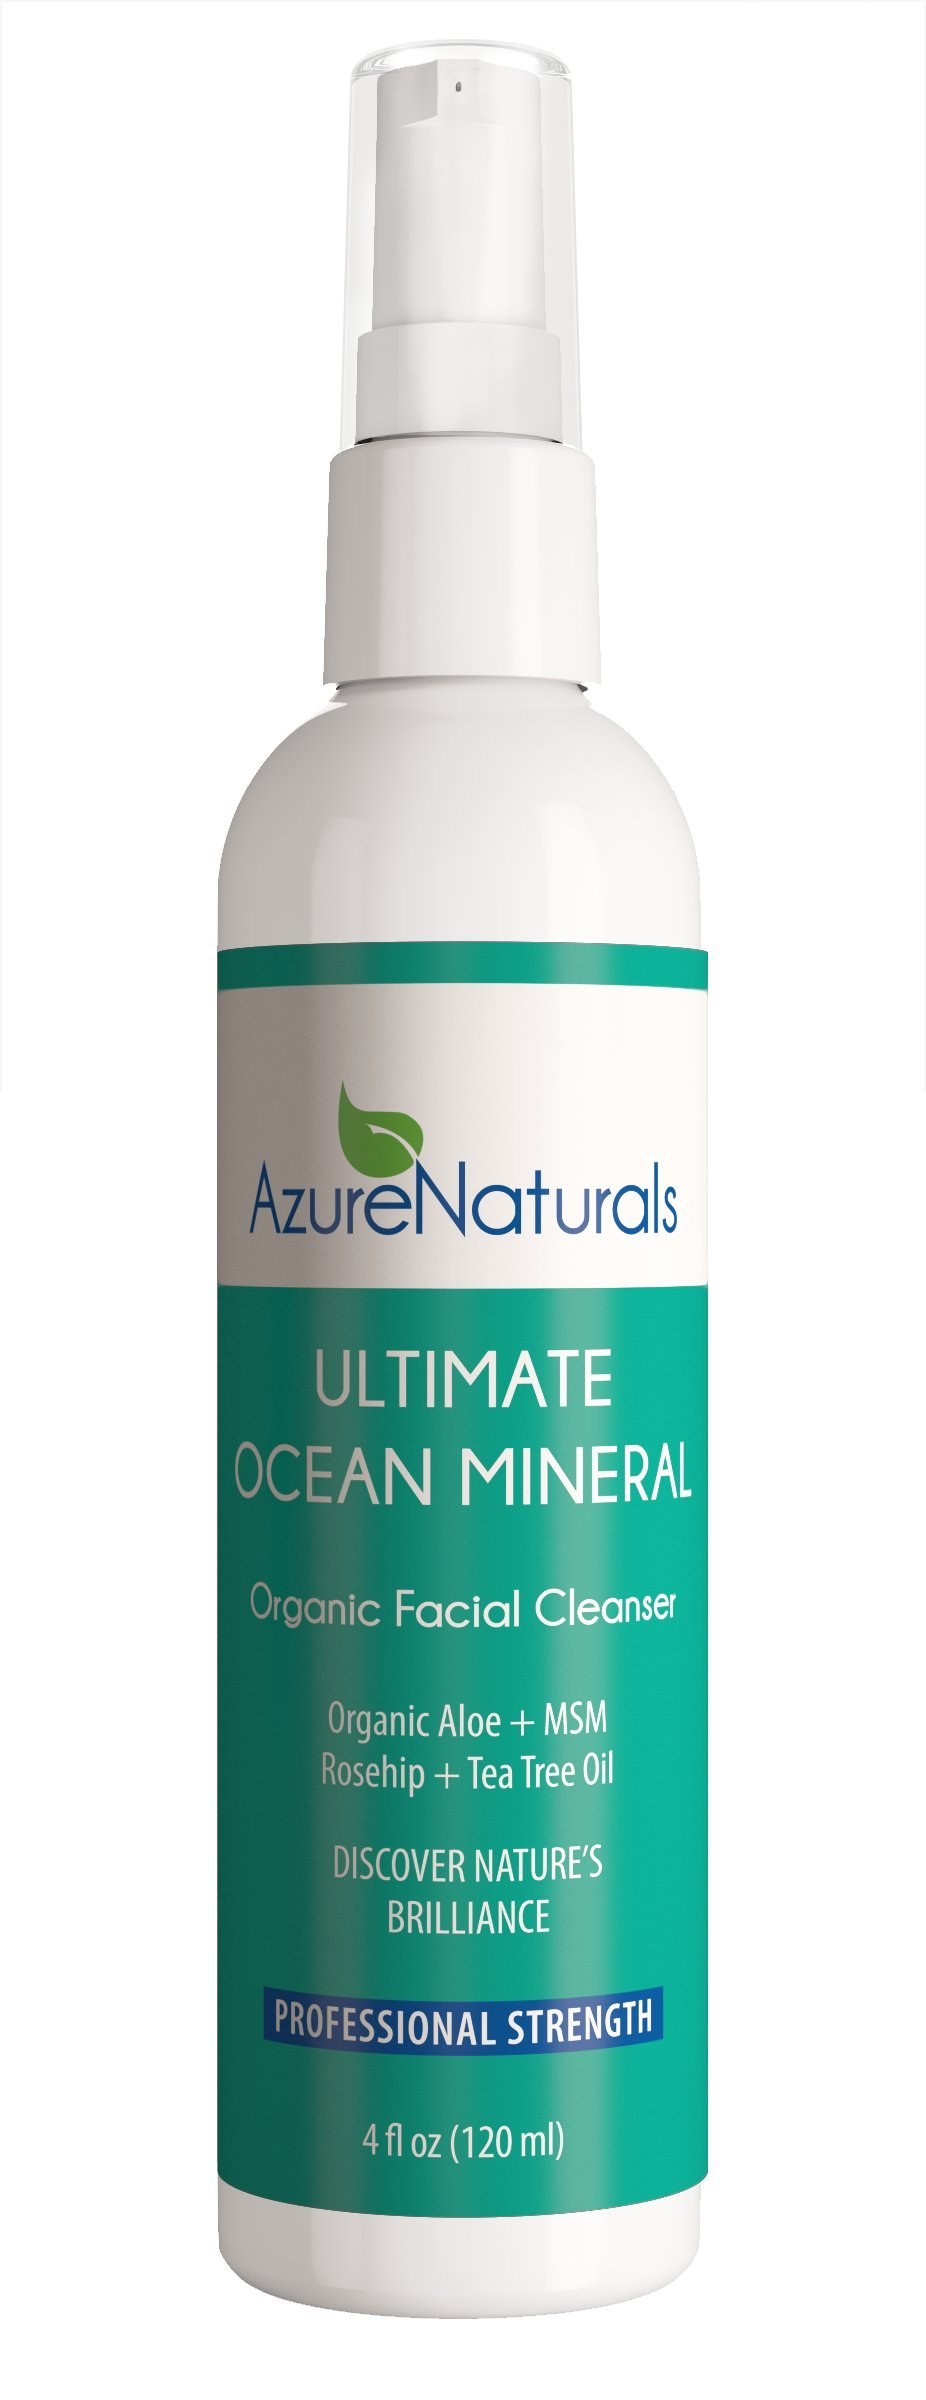 ULTIMATE OCEAN Mineral Organic Facial Cleanser Offers High-End Spa Quality Oceanic Minerals Will Nourish Dry Skin & Damaged Skin, Diminish Discoloration & Leave your Skin Clean, Healthy, Youthful! by Azure Naturals